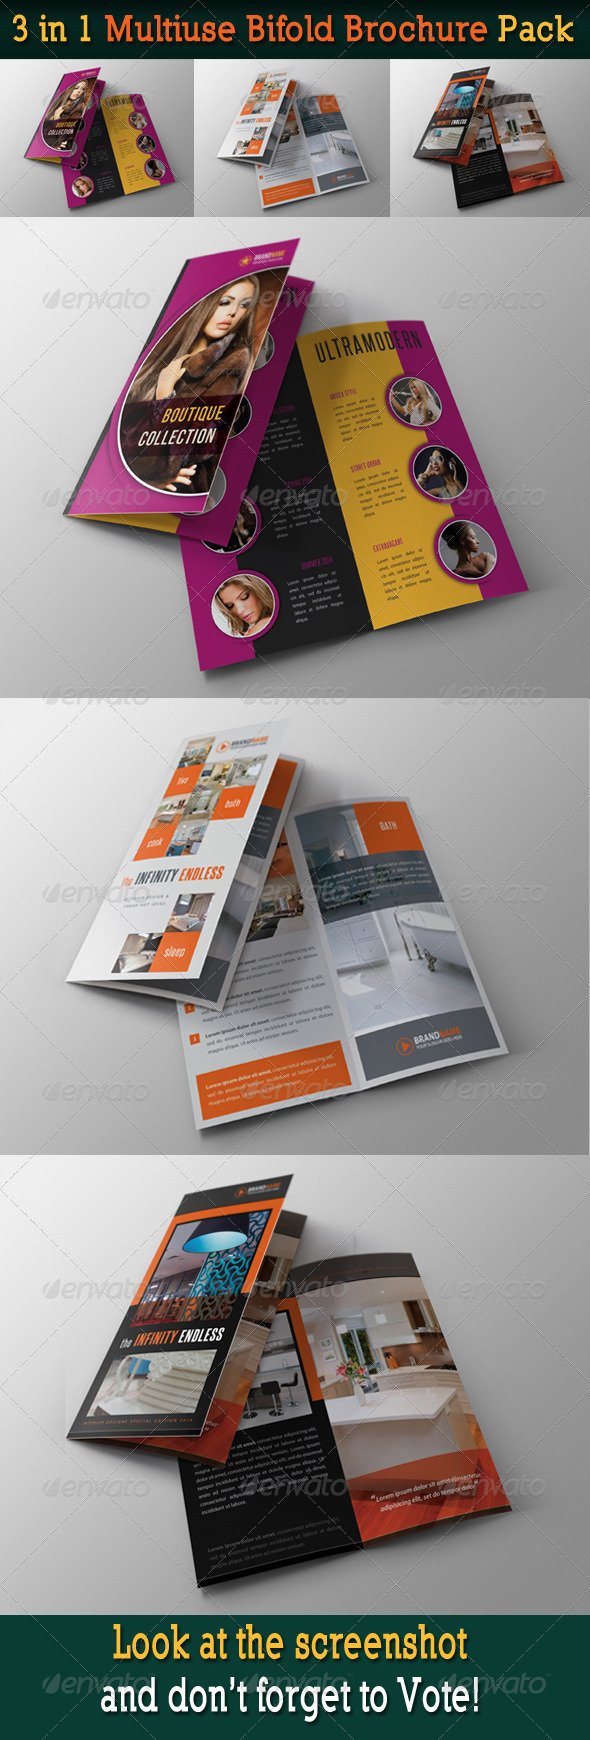 GraphicRiver 3 in 1 Multiuse Bifold Brochure Pack 6315308